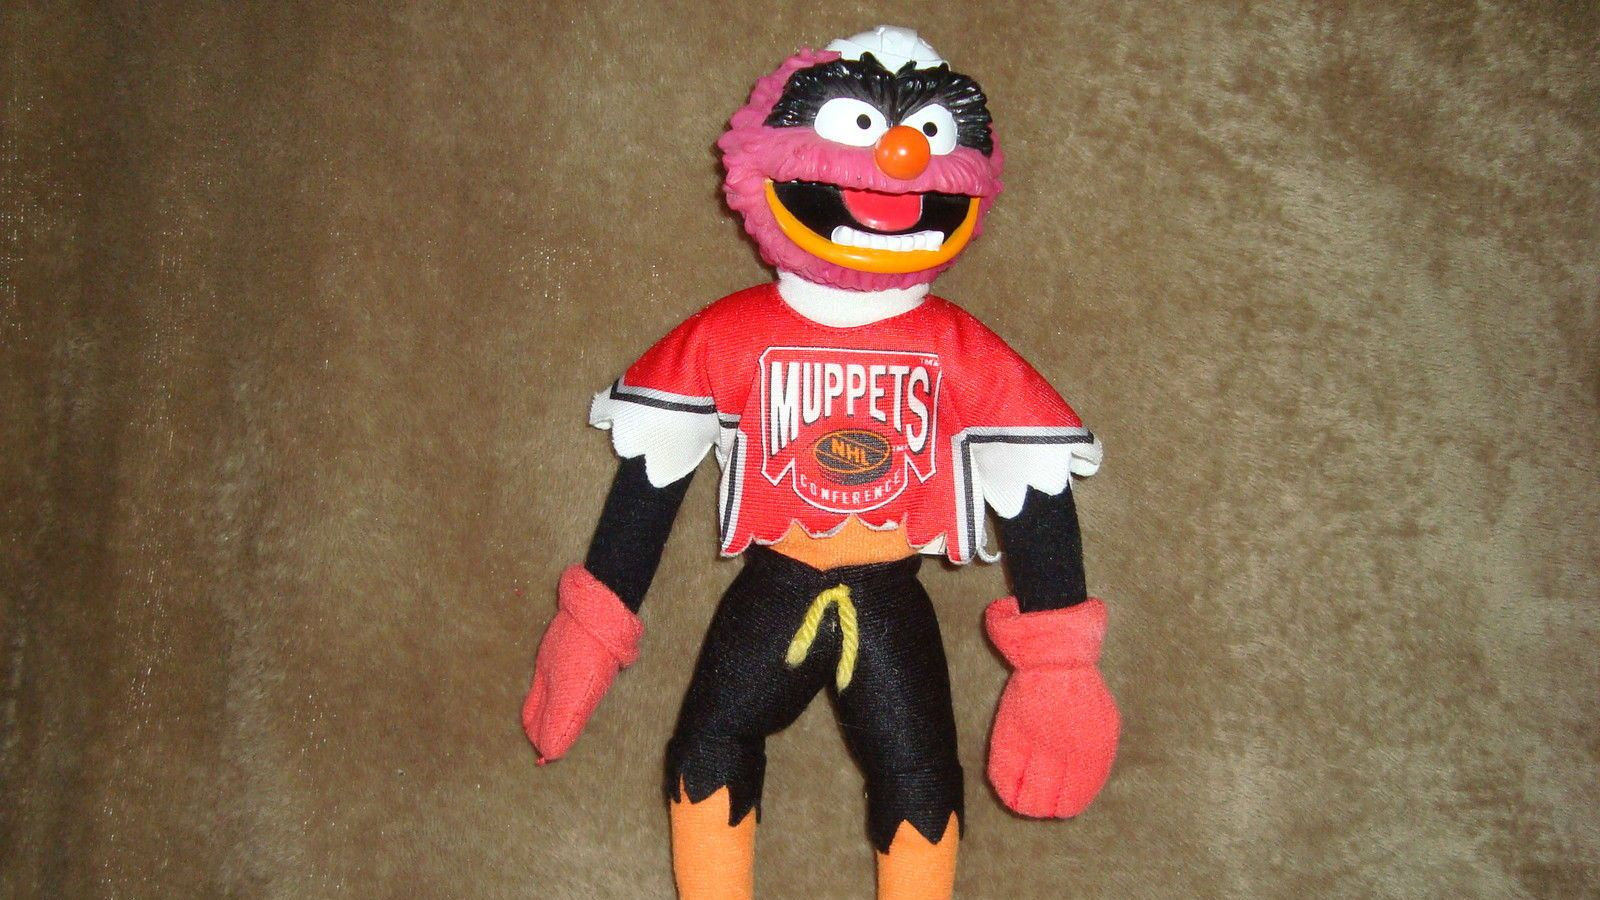 Mcdonalds-muppets-nhl-hockey-player-plush-animal.0